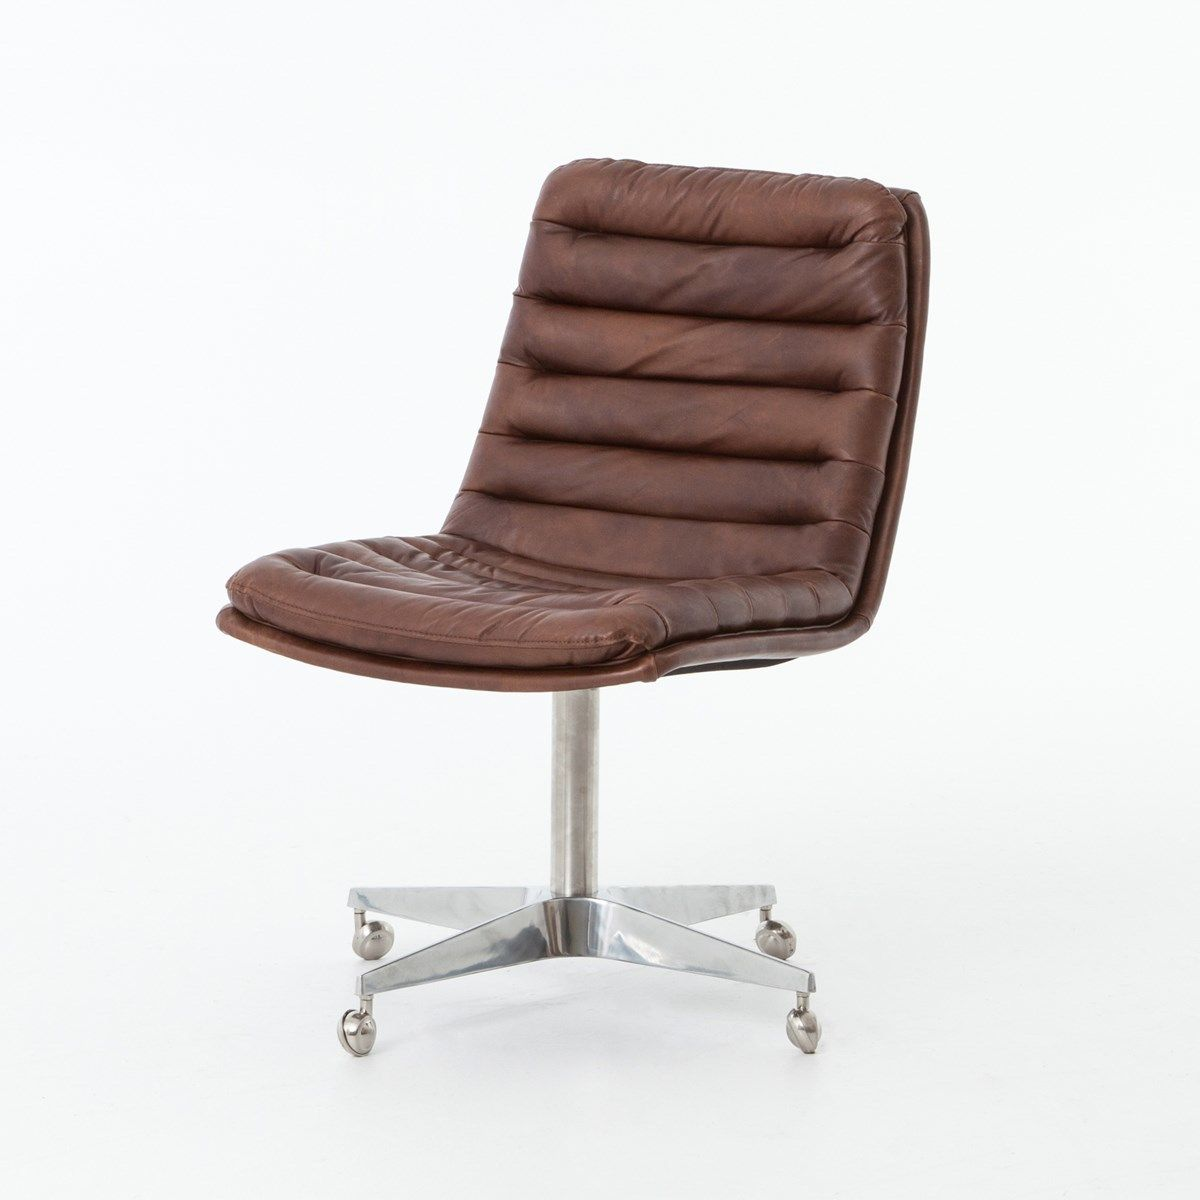 Brilliant Malibu Distressed Whiskey Leather Office Desk Chair Home Cjindustries Chair Design For Home Cjindustriesco